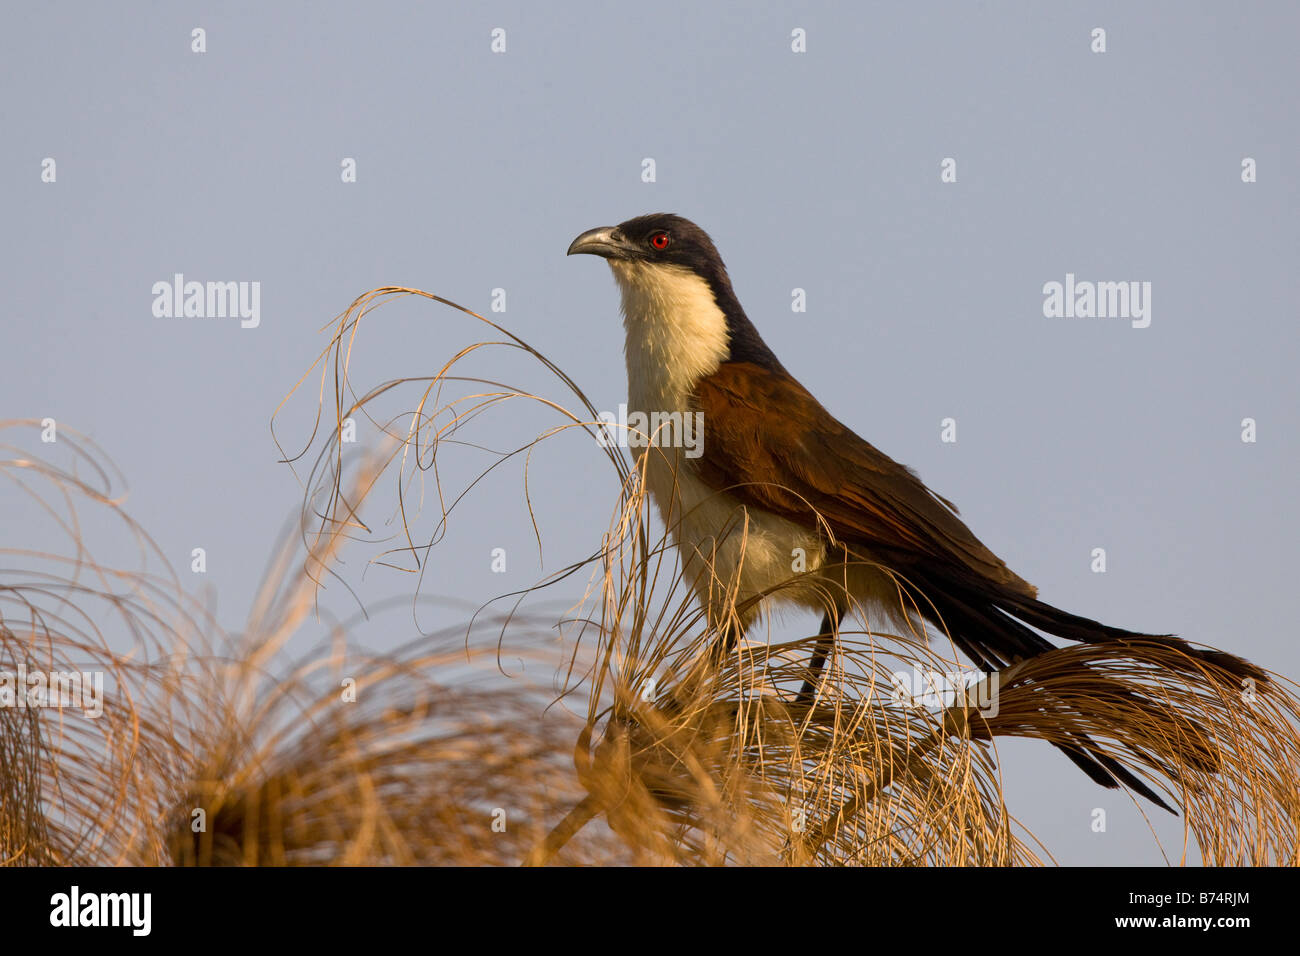 Coppery-tailed Coucal Perching on Papyrus in the Okavango Panhandle, Botswana - Stock Image